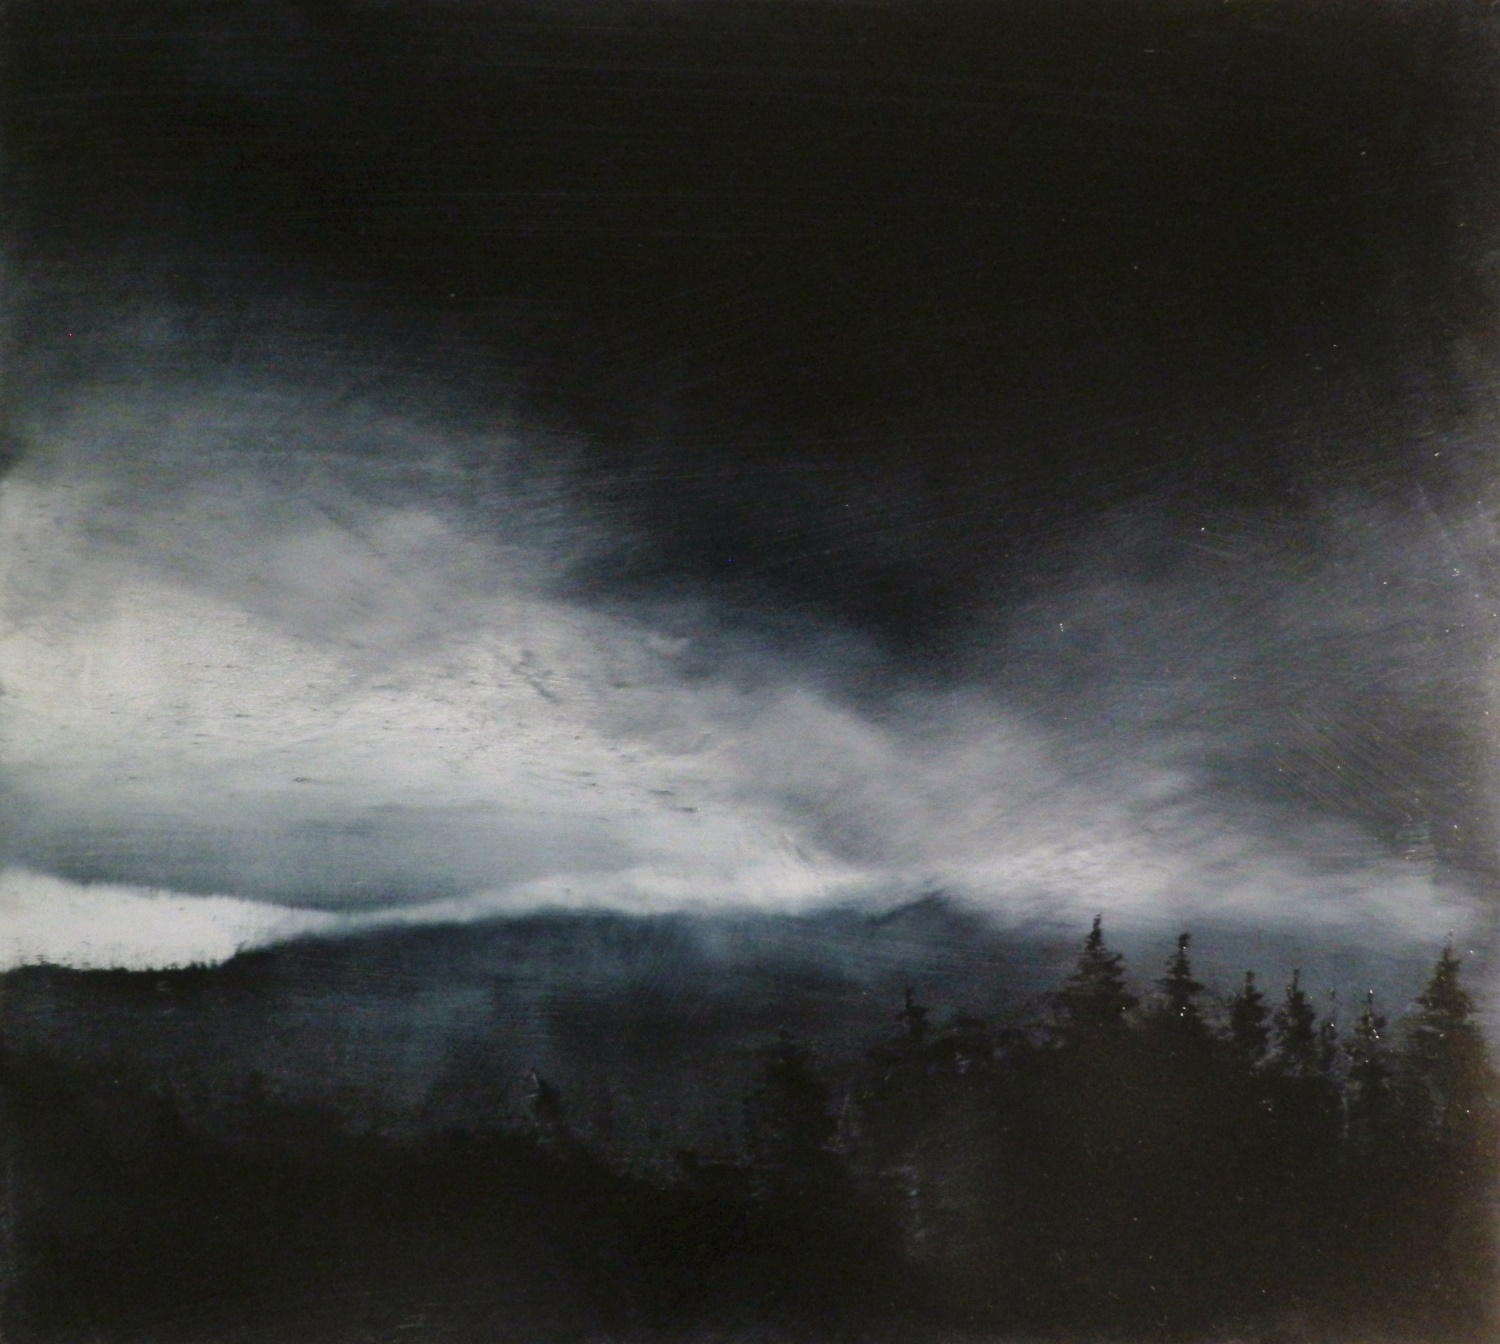 Night Time Storm - Daniel Chester